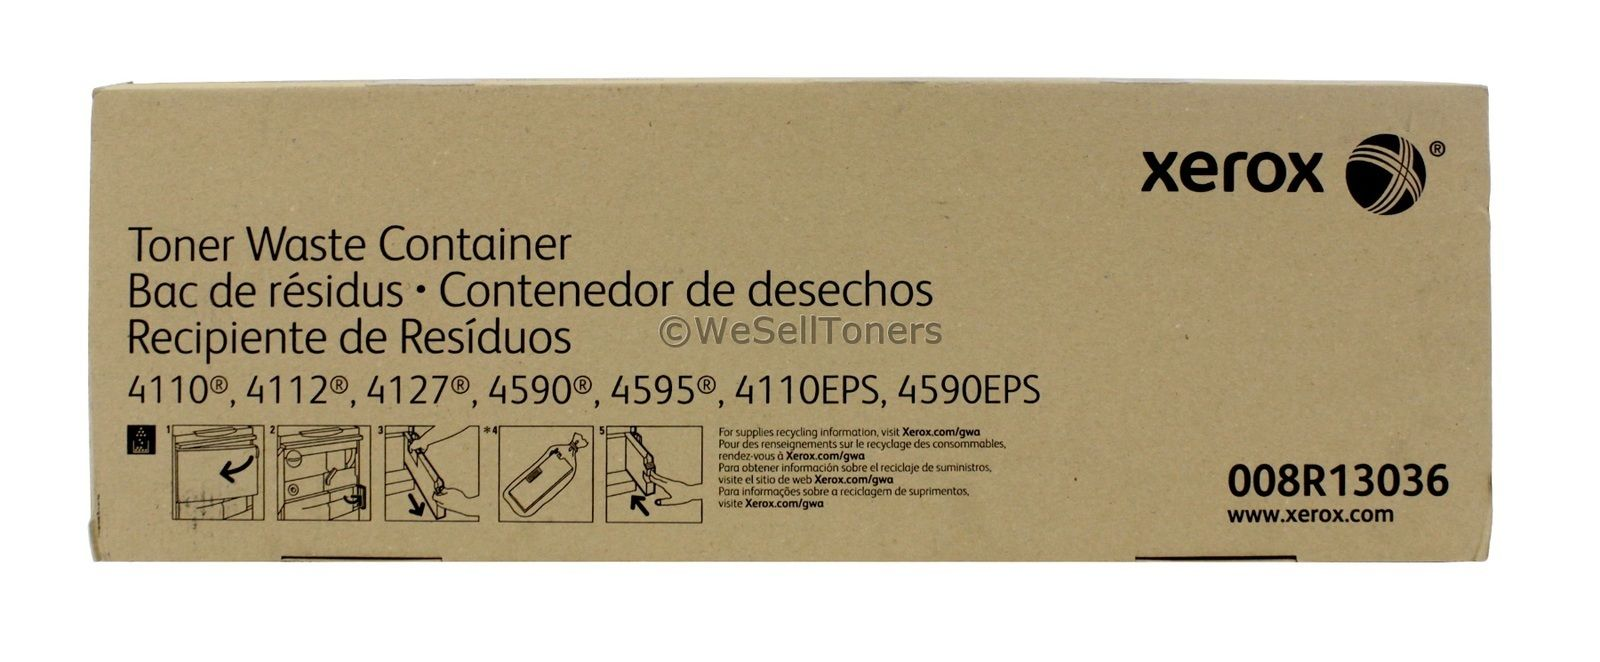 8R13036 XEROX 4110 4590 TONER WASTE CONTAINER